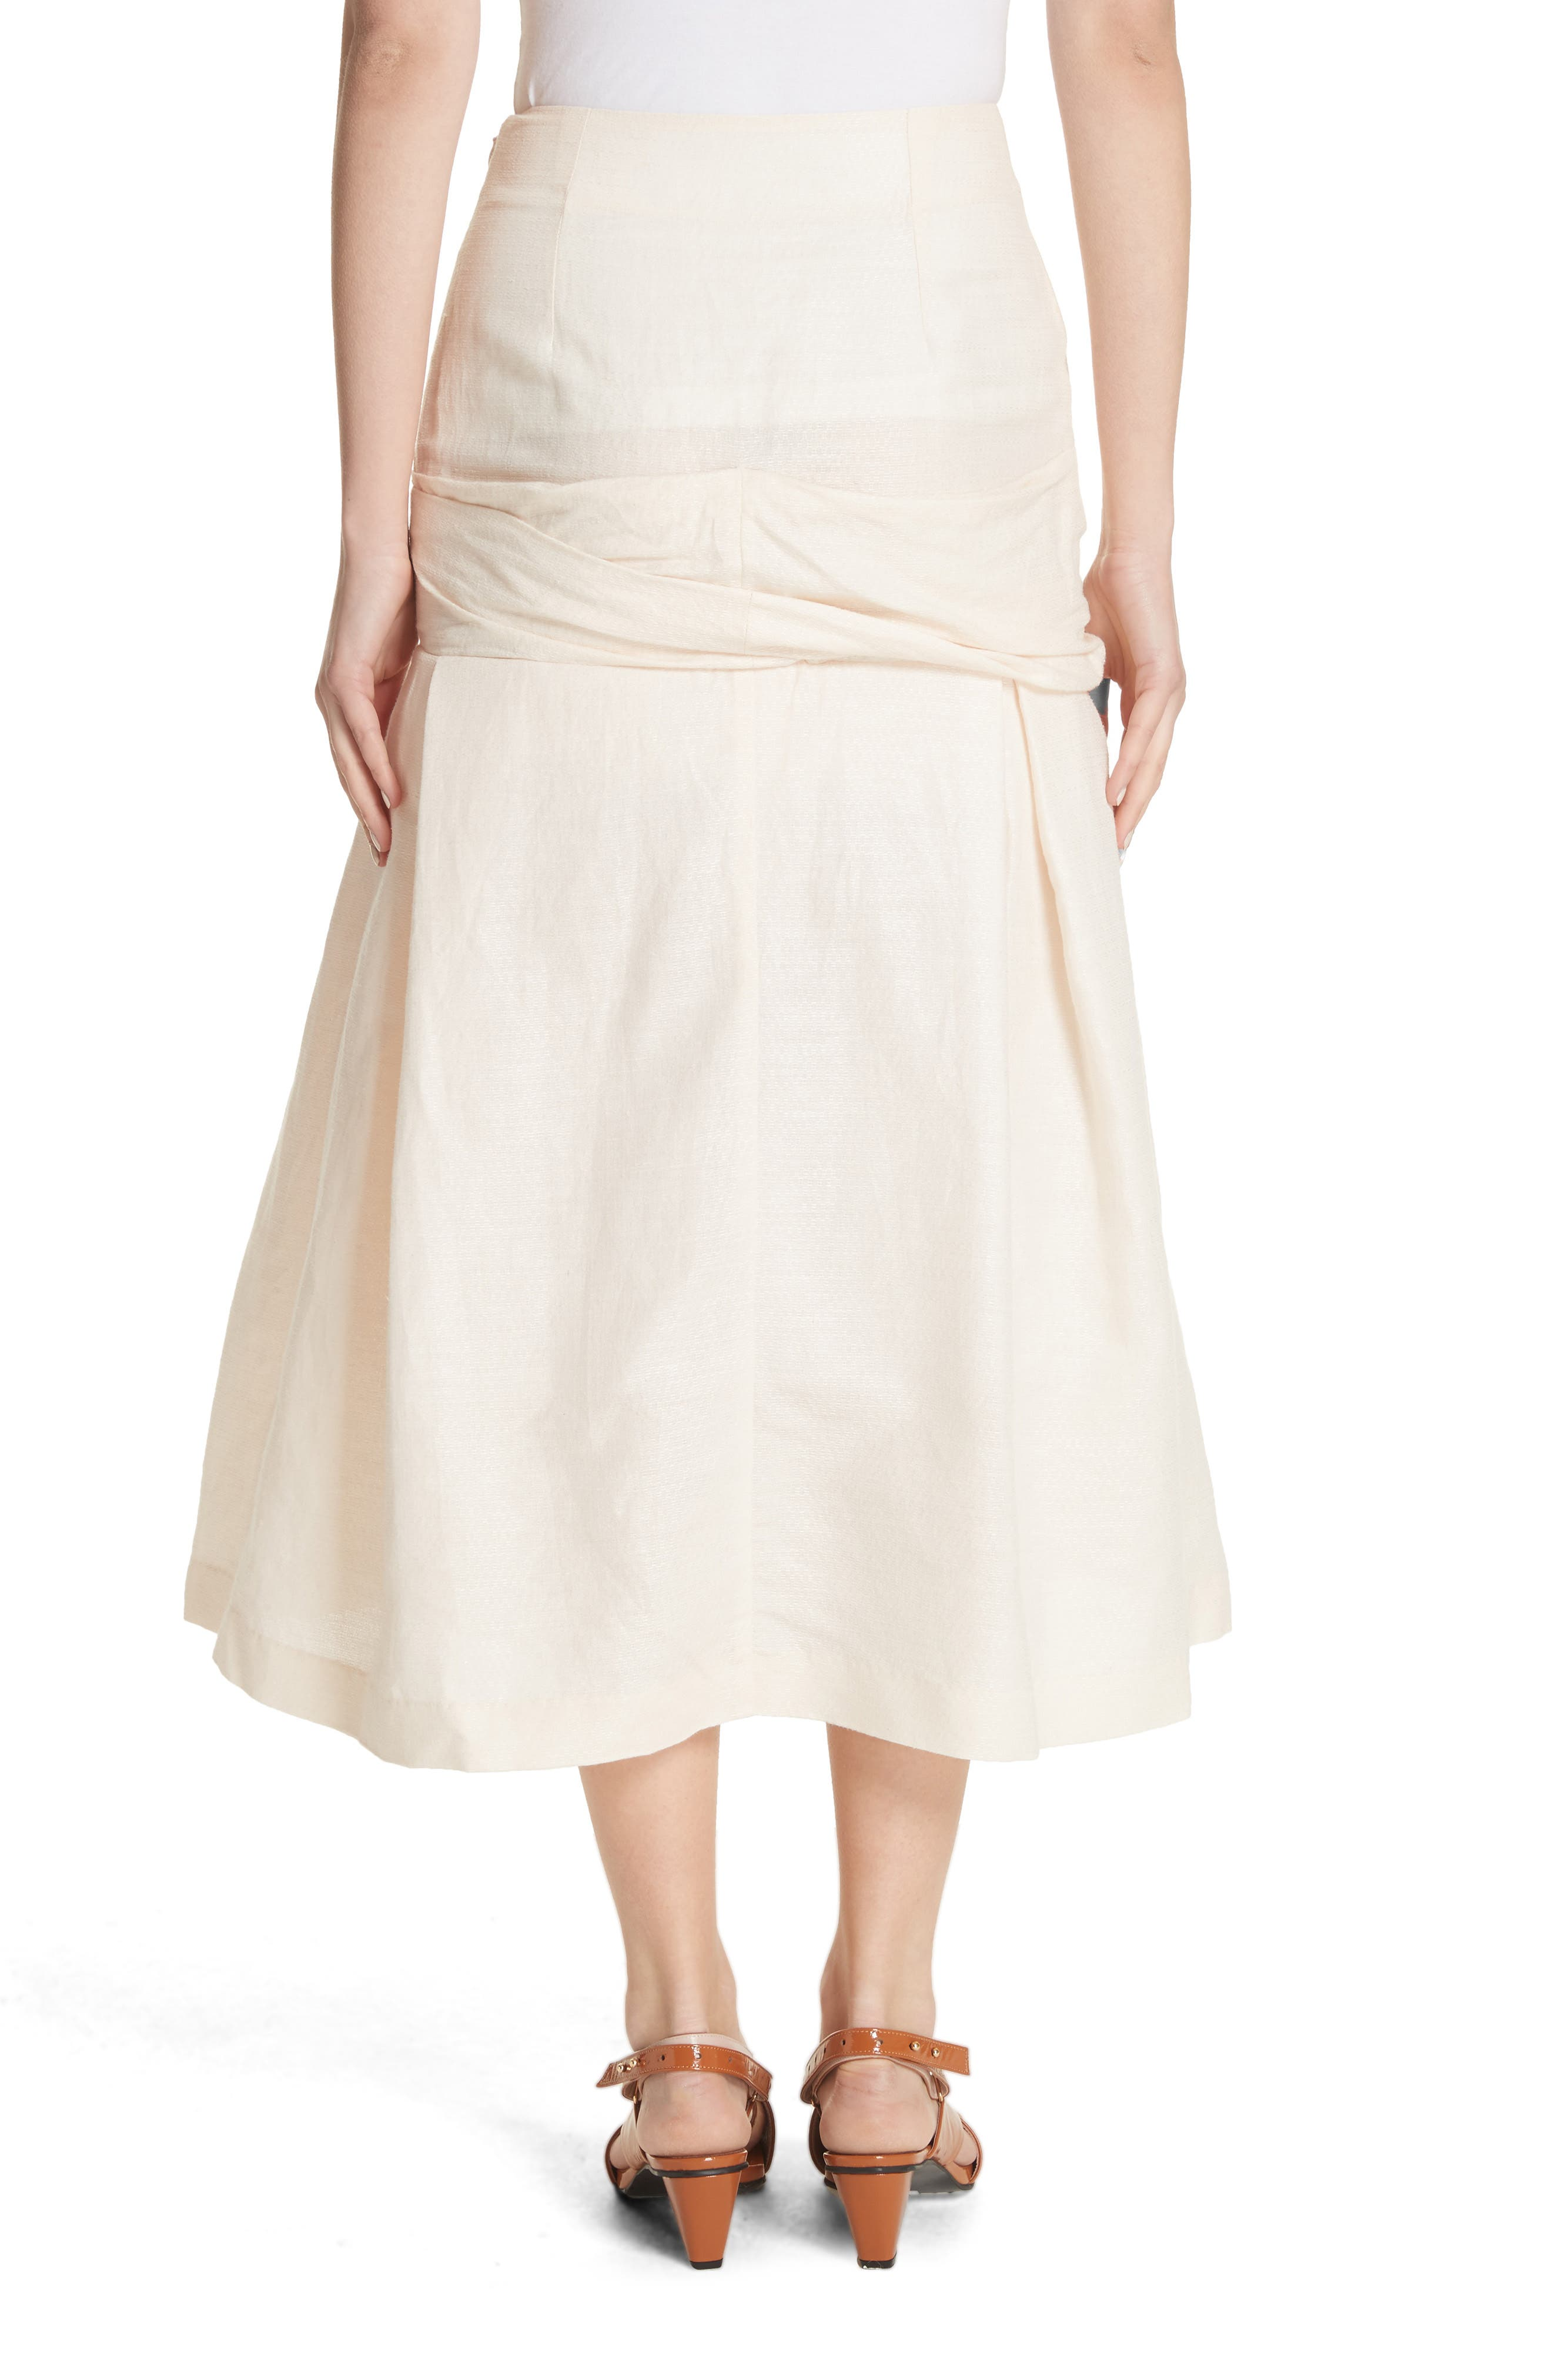 La Jupe Mamao Skirt,                             Alternate thumbnail 2, color,                             250